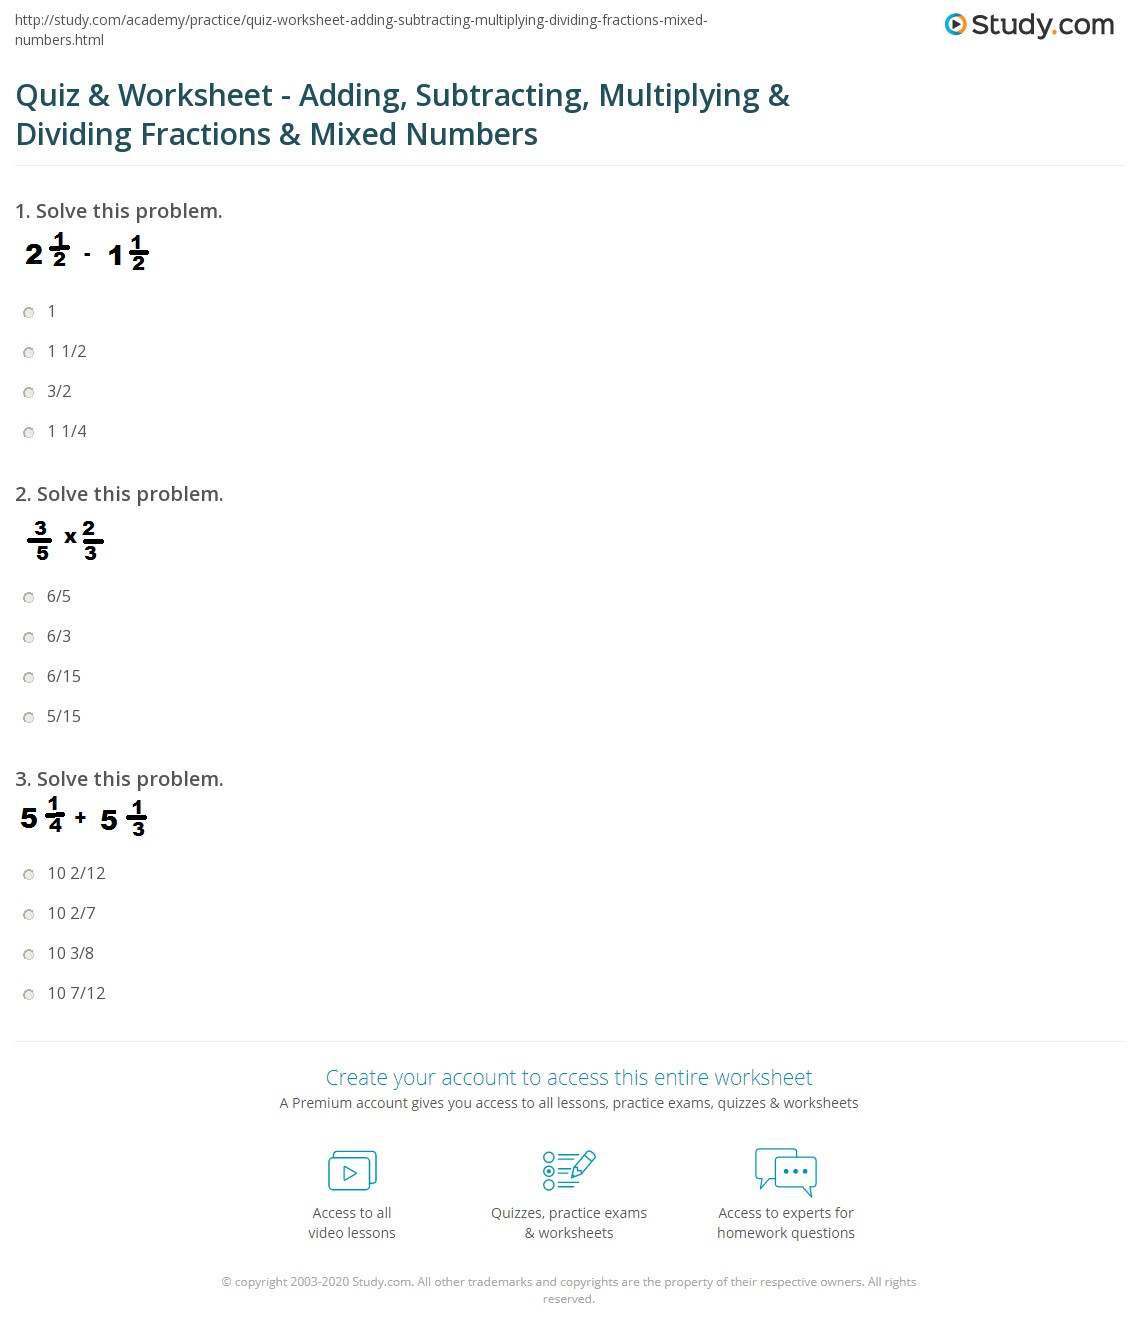 Quiz Worksheet Adding Subtracting Multiplying Dividing – Fractions of Quantities Worksheets